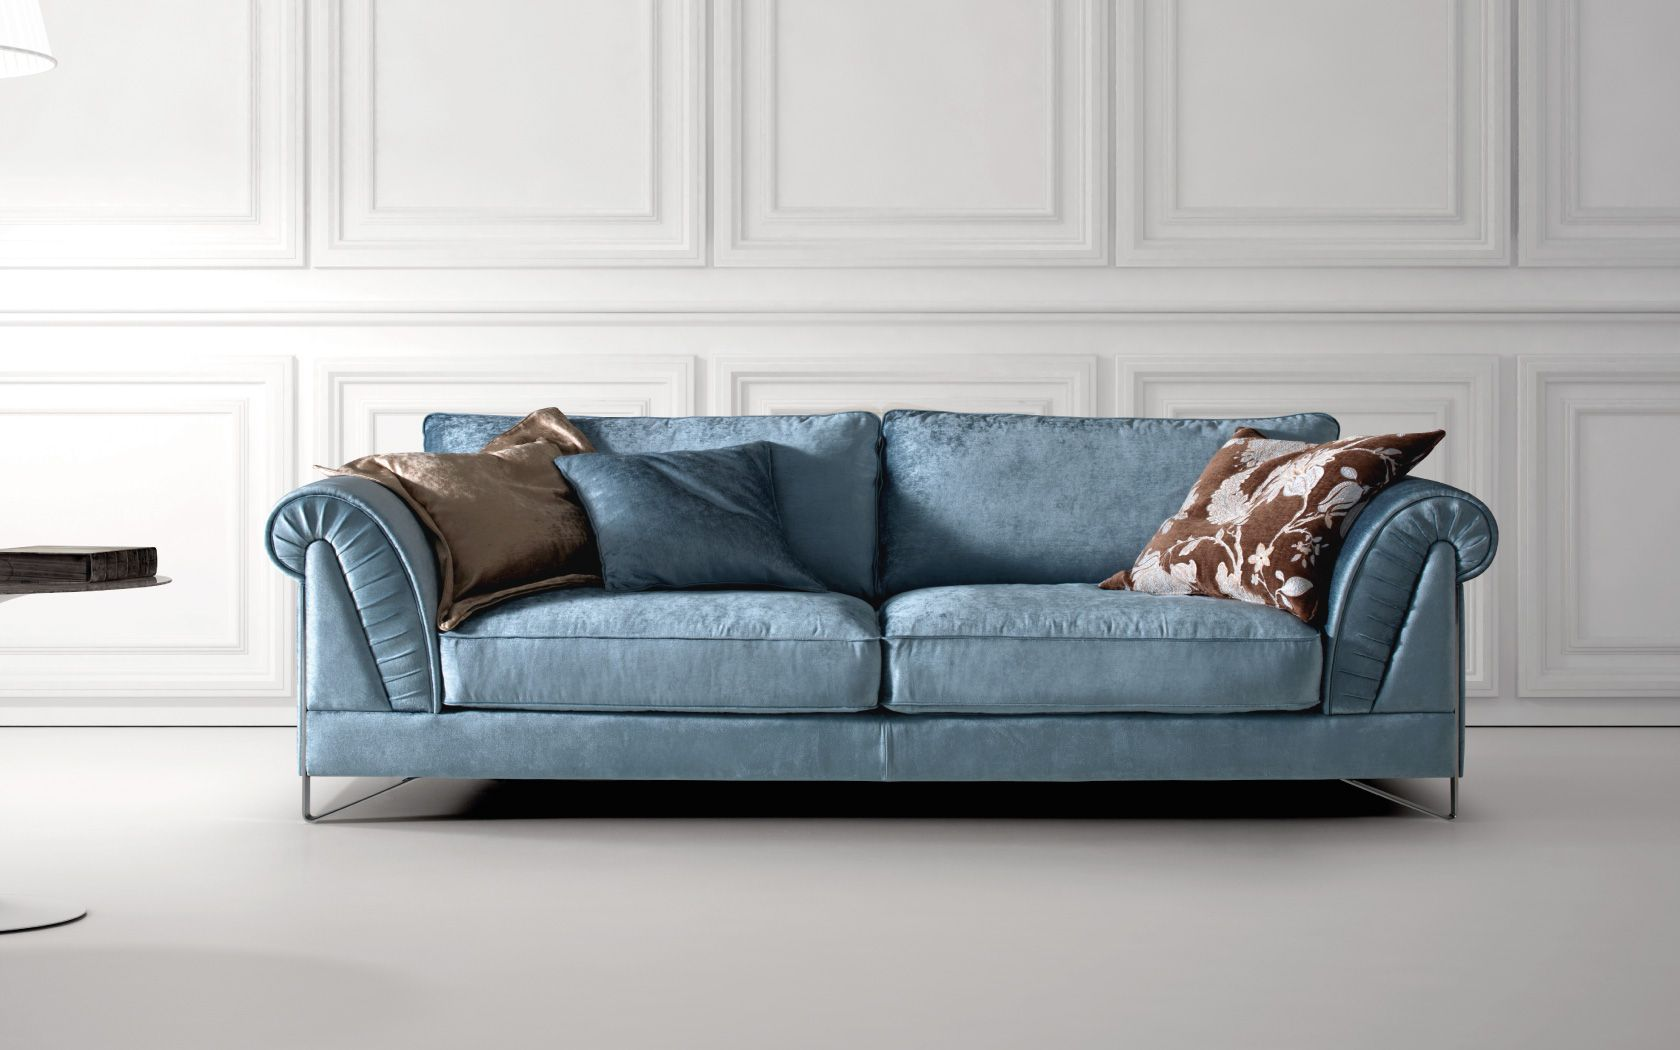 Mambo Big Sofa The Ingrid Sofa And Loveseat From Max Divani Italy Tufted